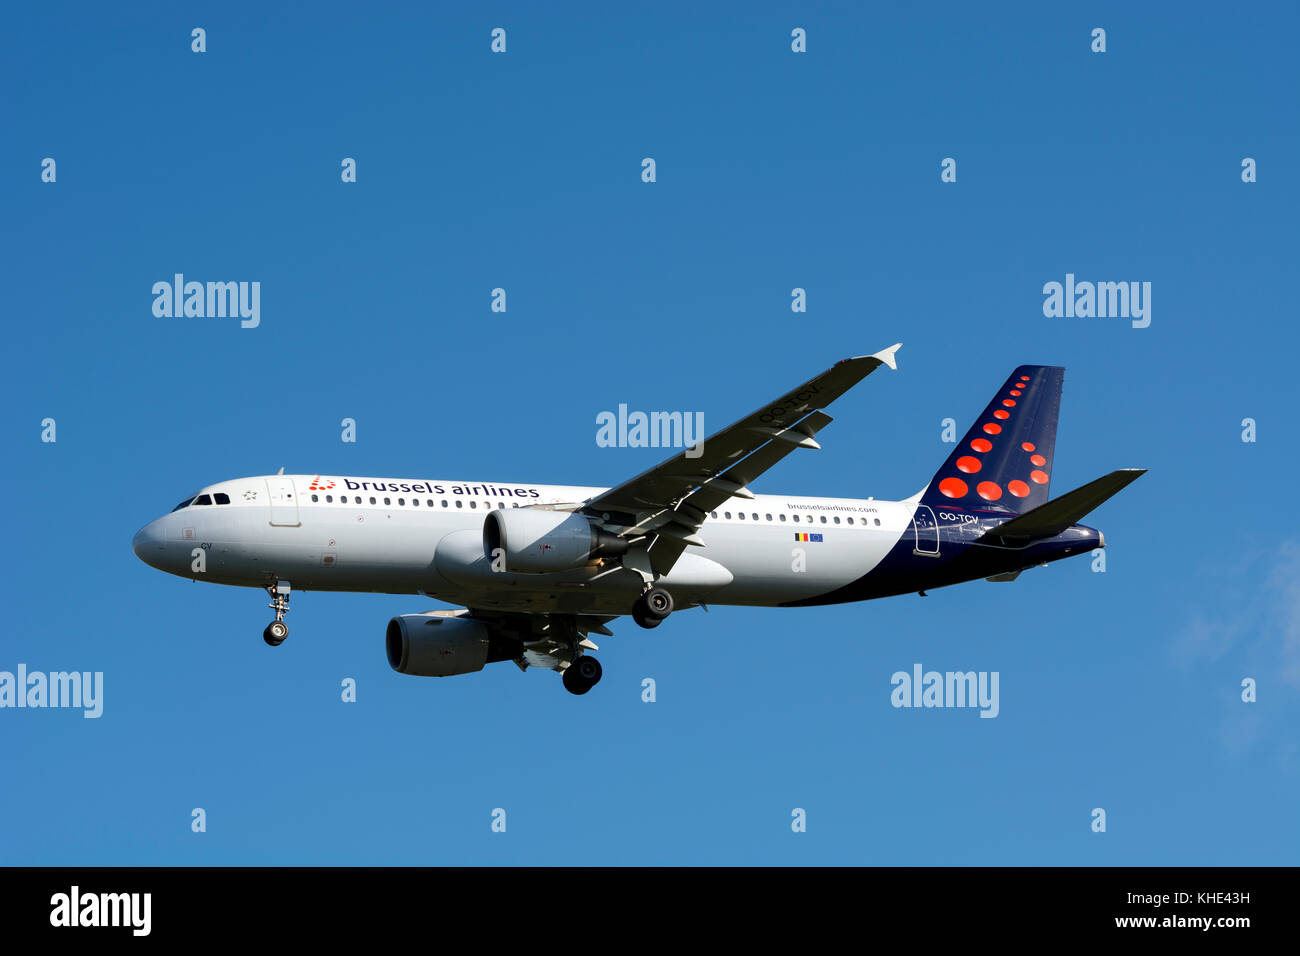 Brussels Airlines Airbus A320 landing at Birmingham Airport, UK (OO-TCV) - Stock Image